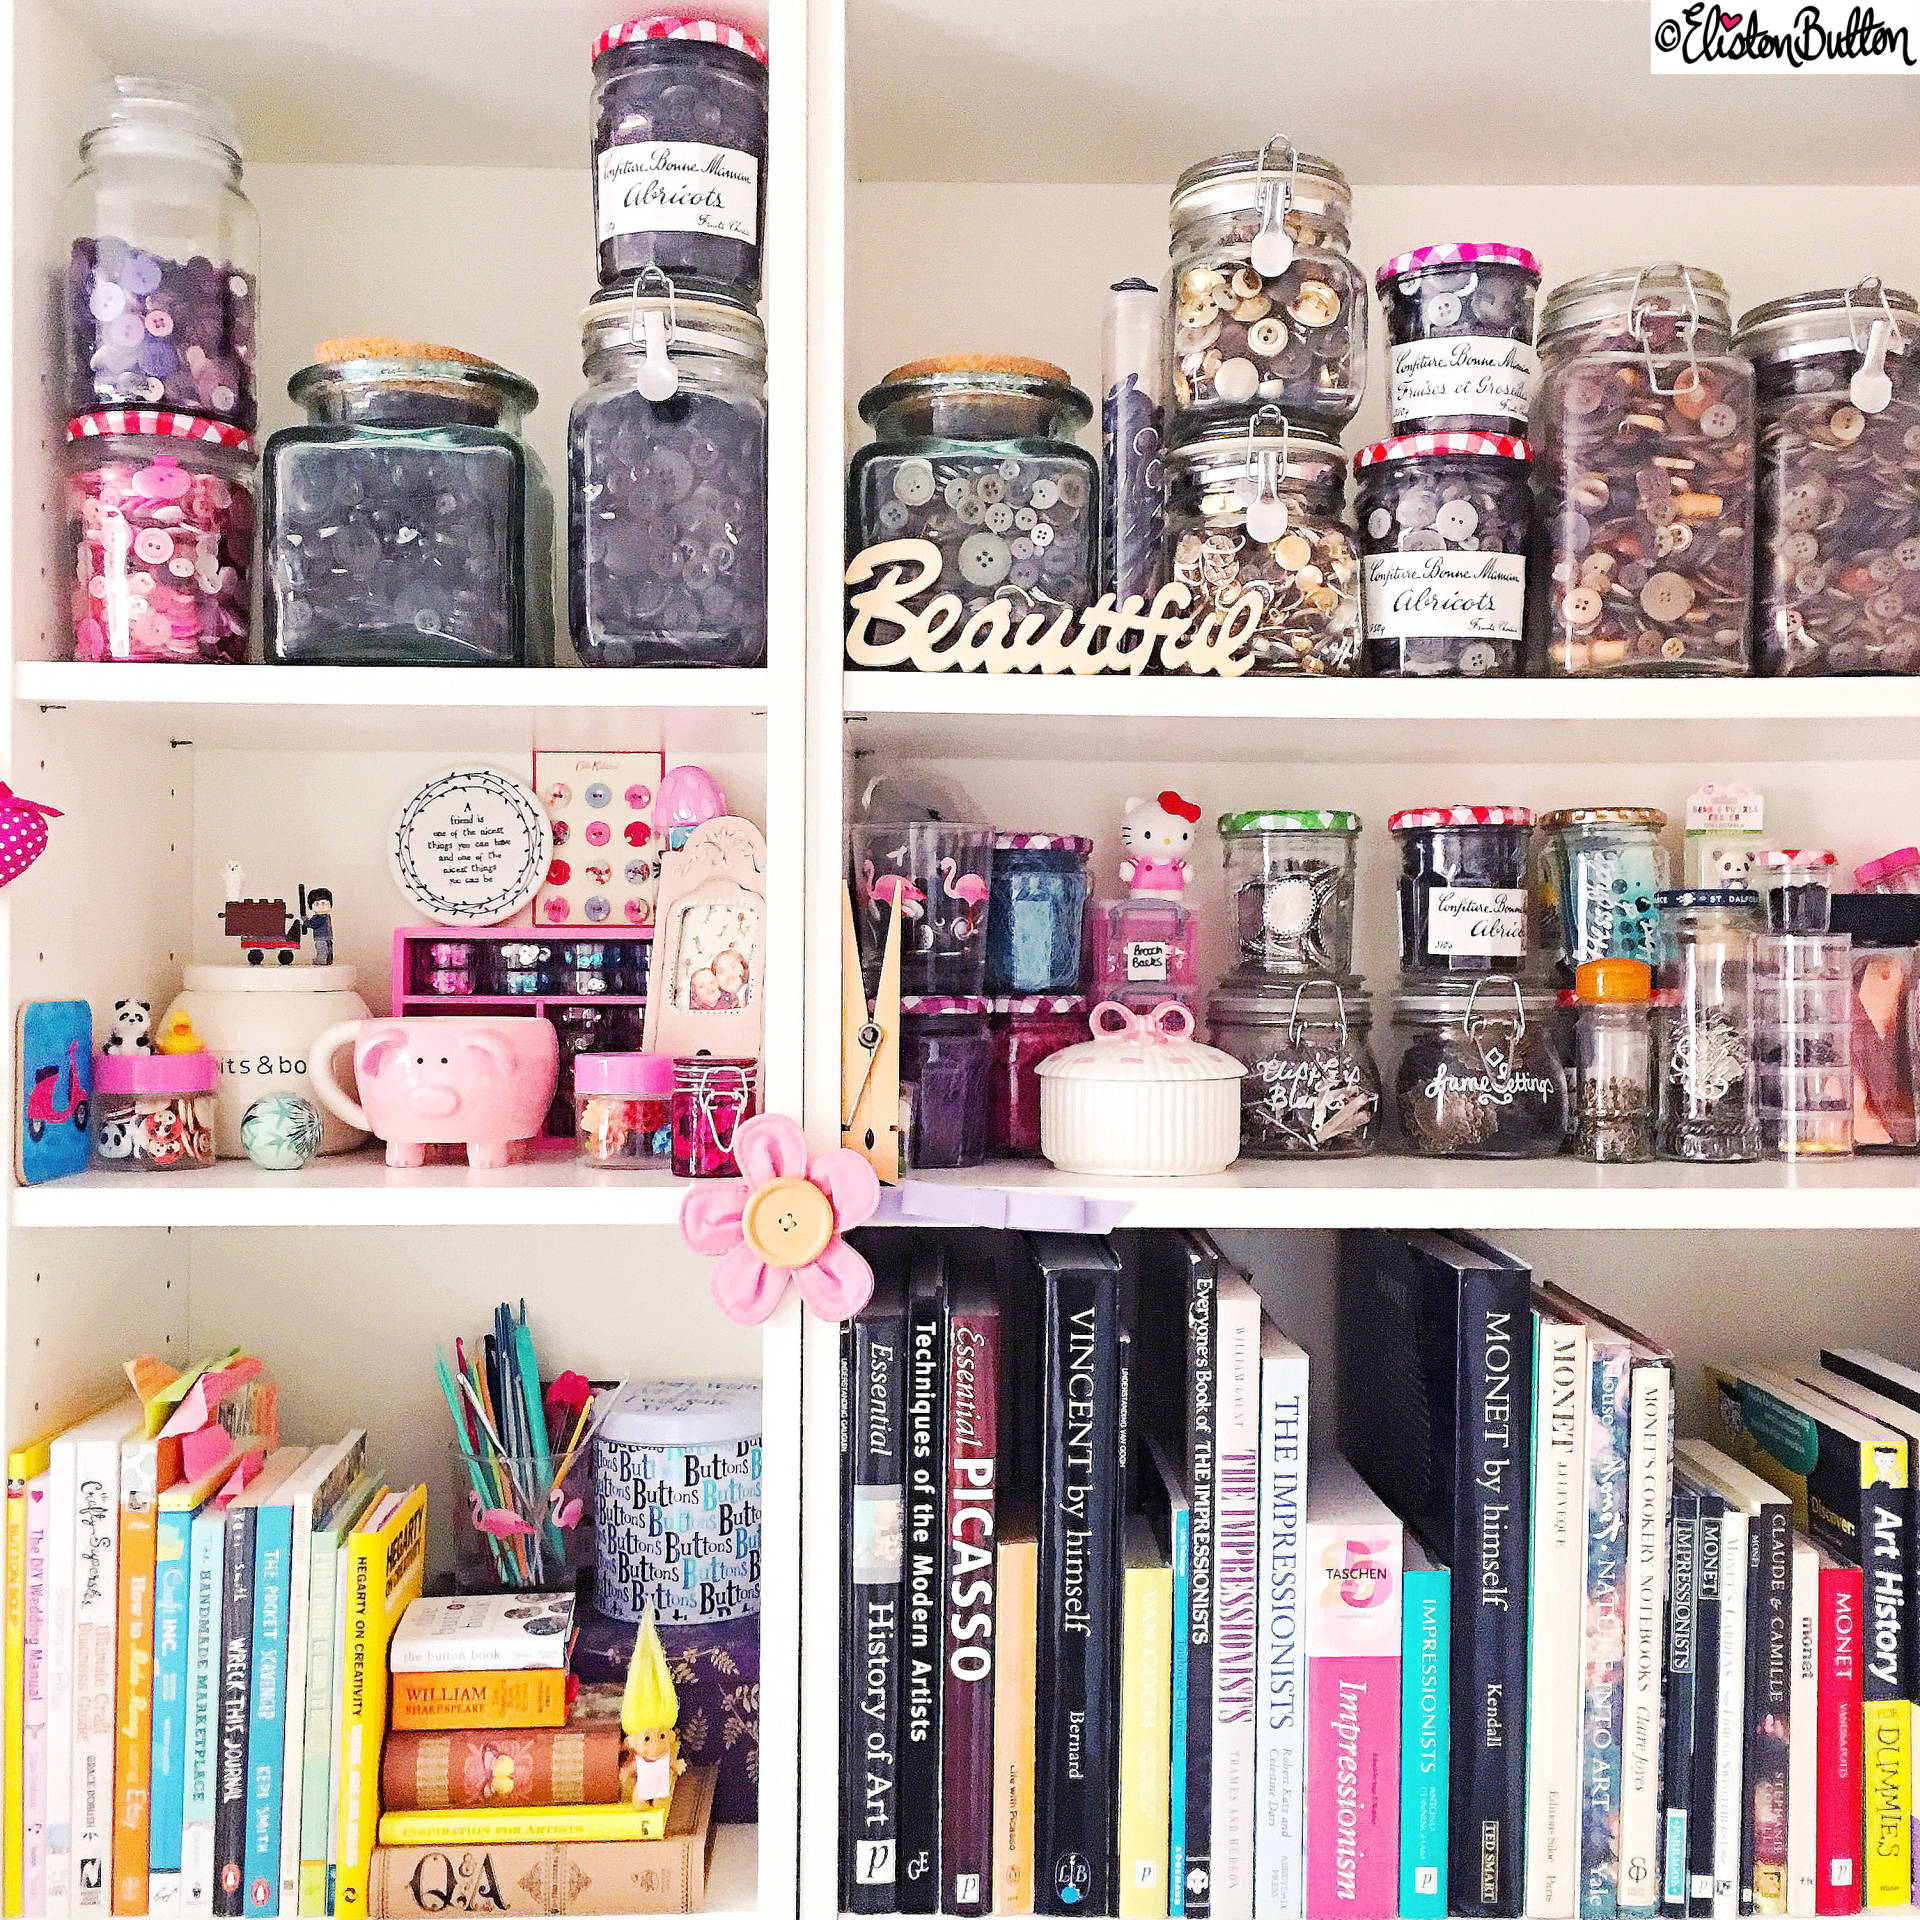 Day 03 - Art - Craft Studio Art Bookshelves and Jars of Beads and Buttons - Photo-a-Day – March 2016 at www.elistonbutton.com - Eliston Button - That Crafty Kid – Art, Design, Craft & Adventure.